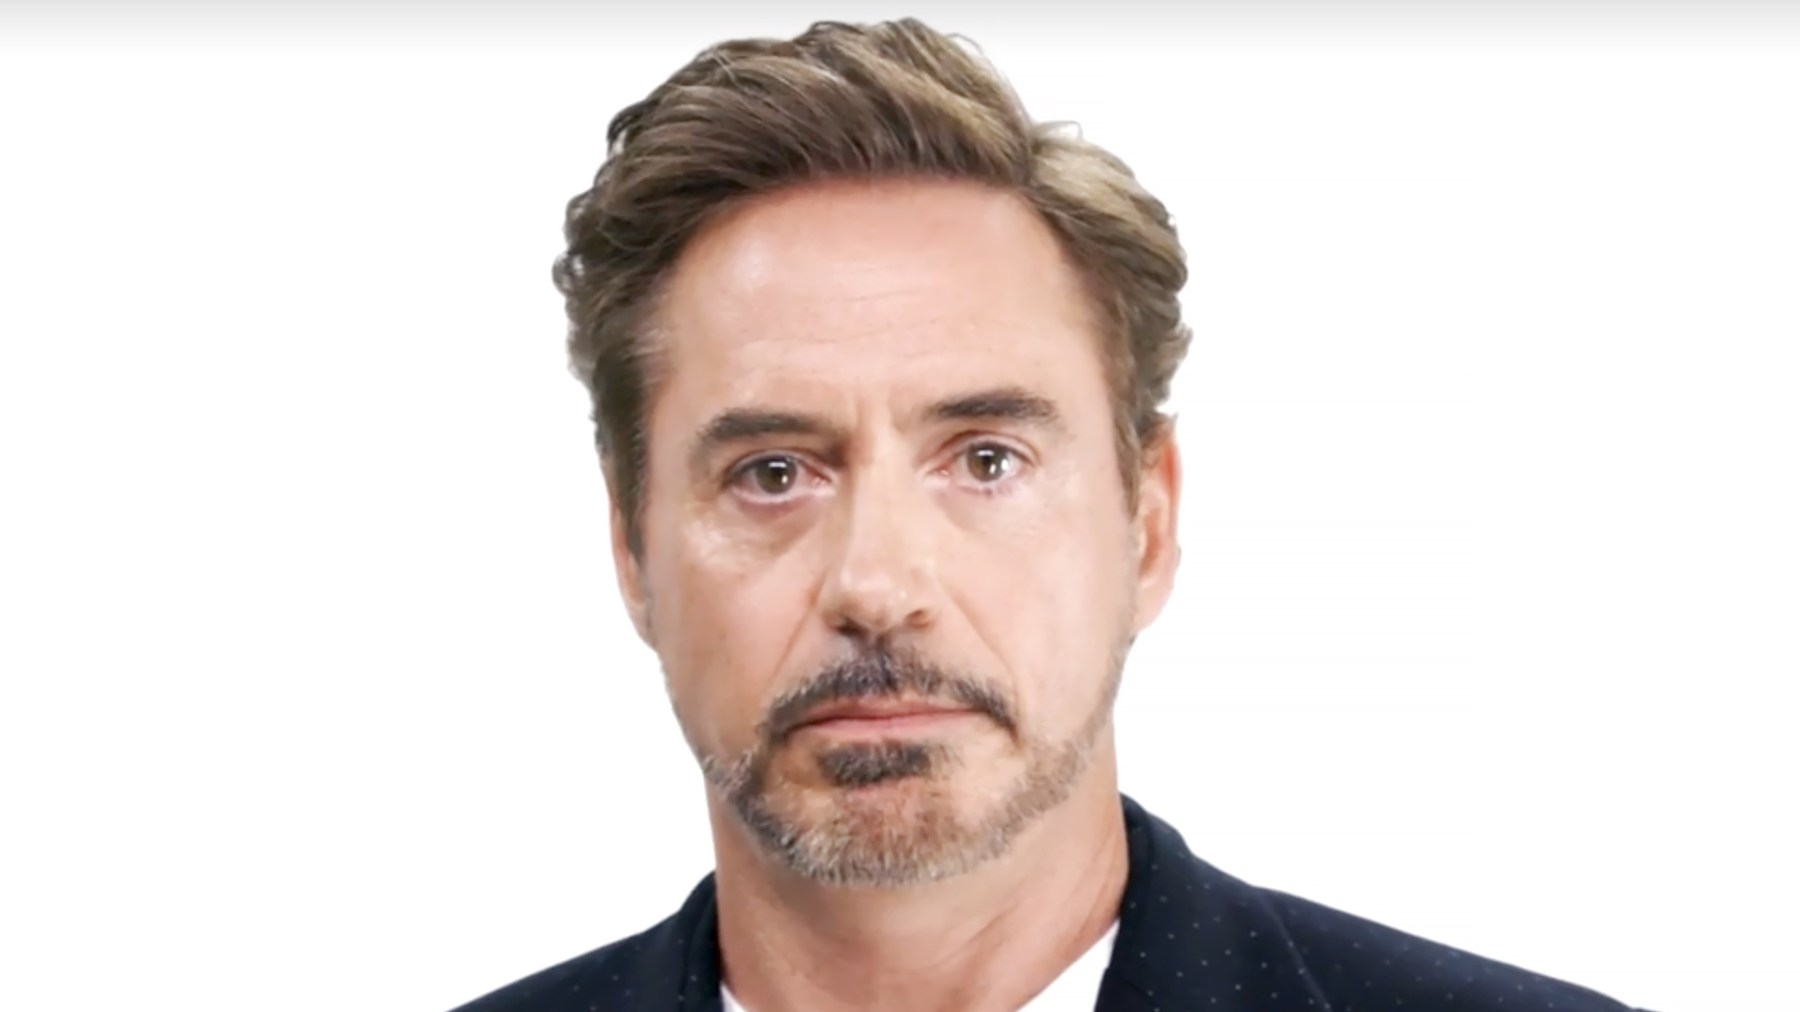 Robert Downey Jr Scarjo More Celebs Team Up For Voting Psa Watch